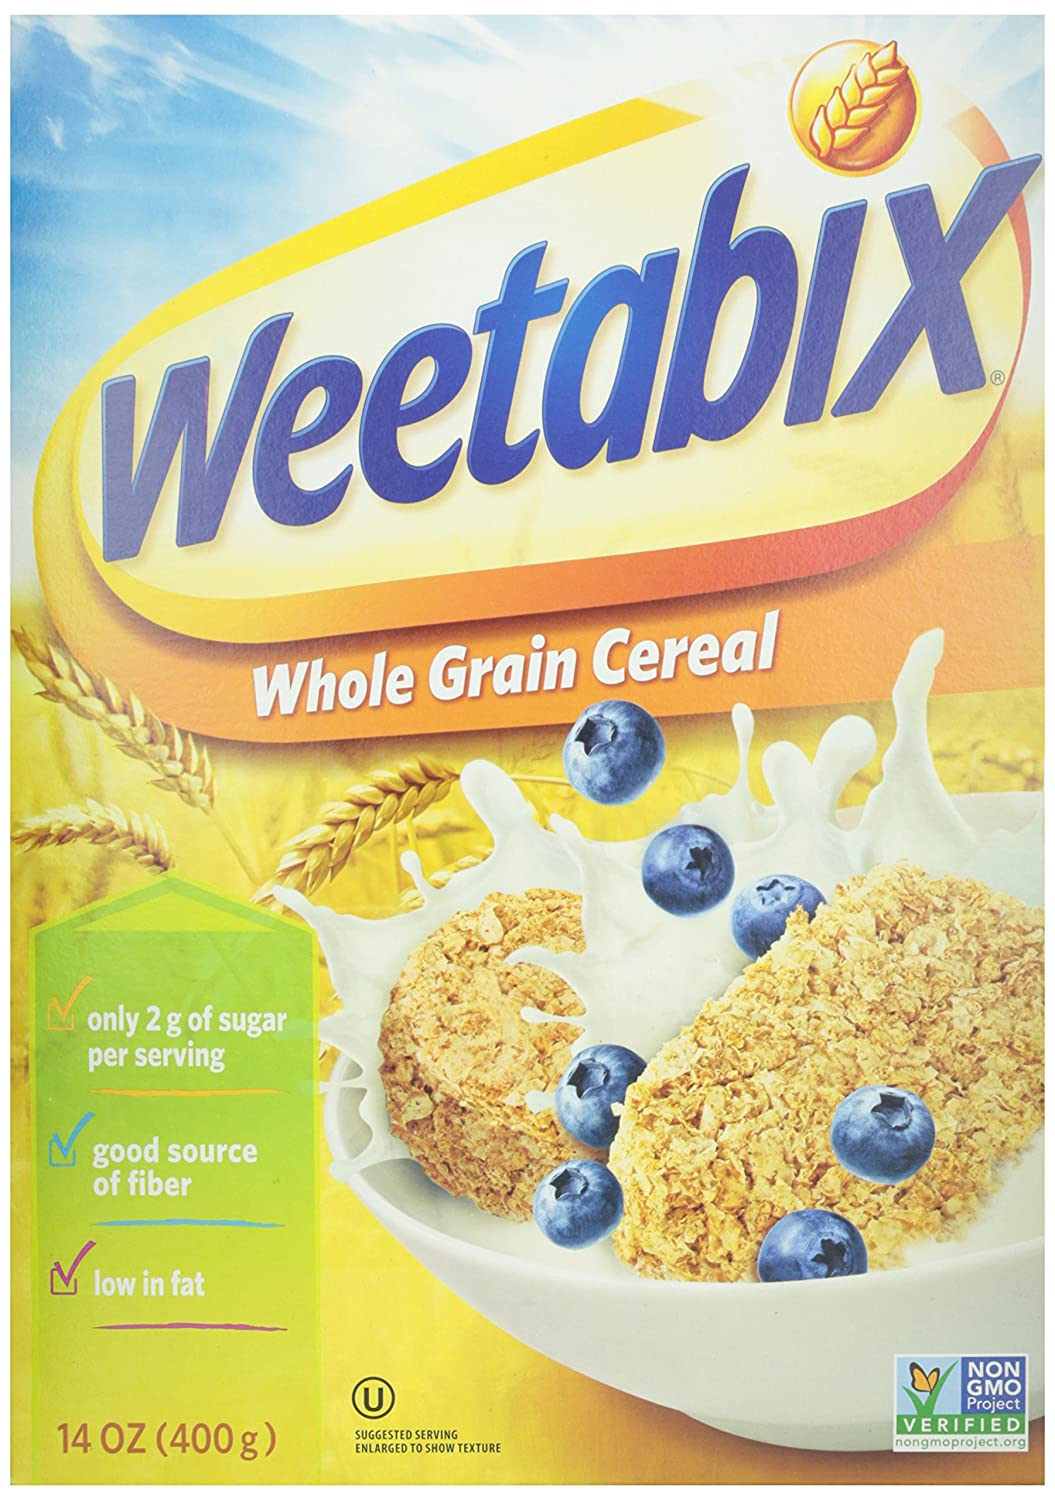 Weetabix Whole Grain Cereal Biscuits, Non-GMO Project Verified, Heart Healthy, Kosher, Vegan, 14 Oz Box